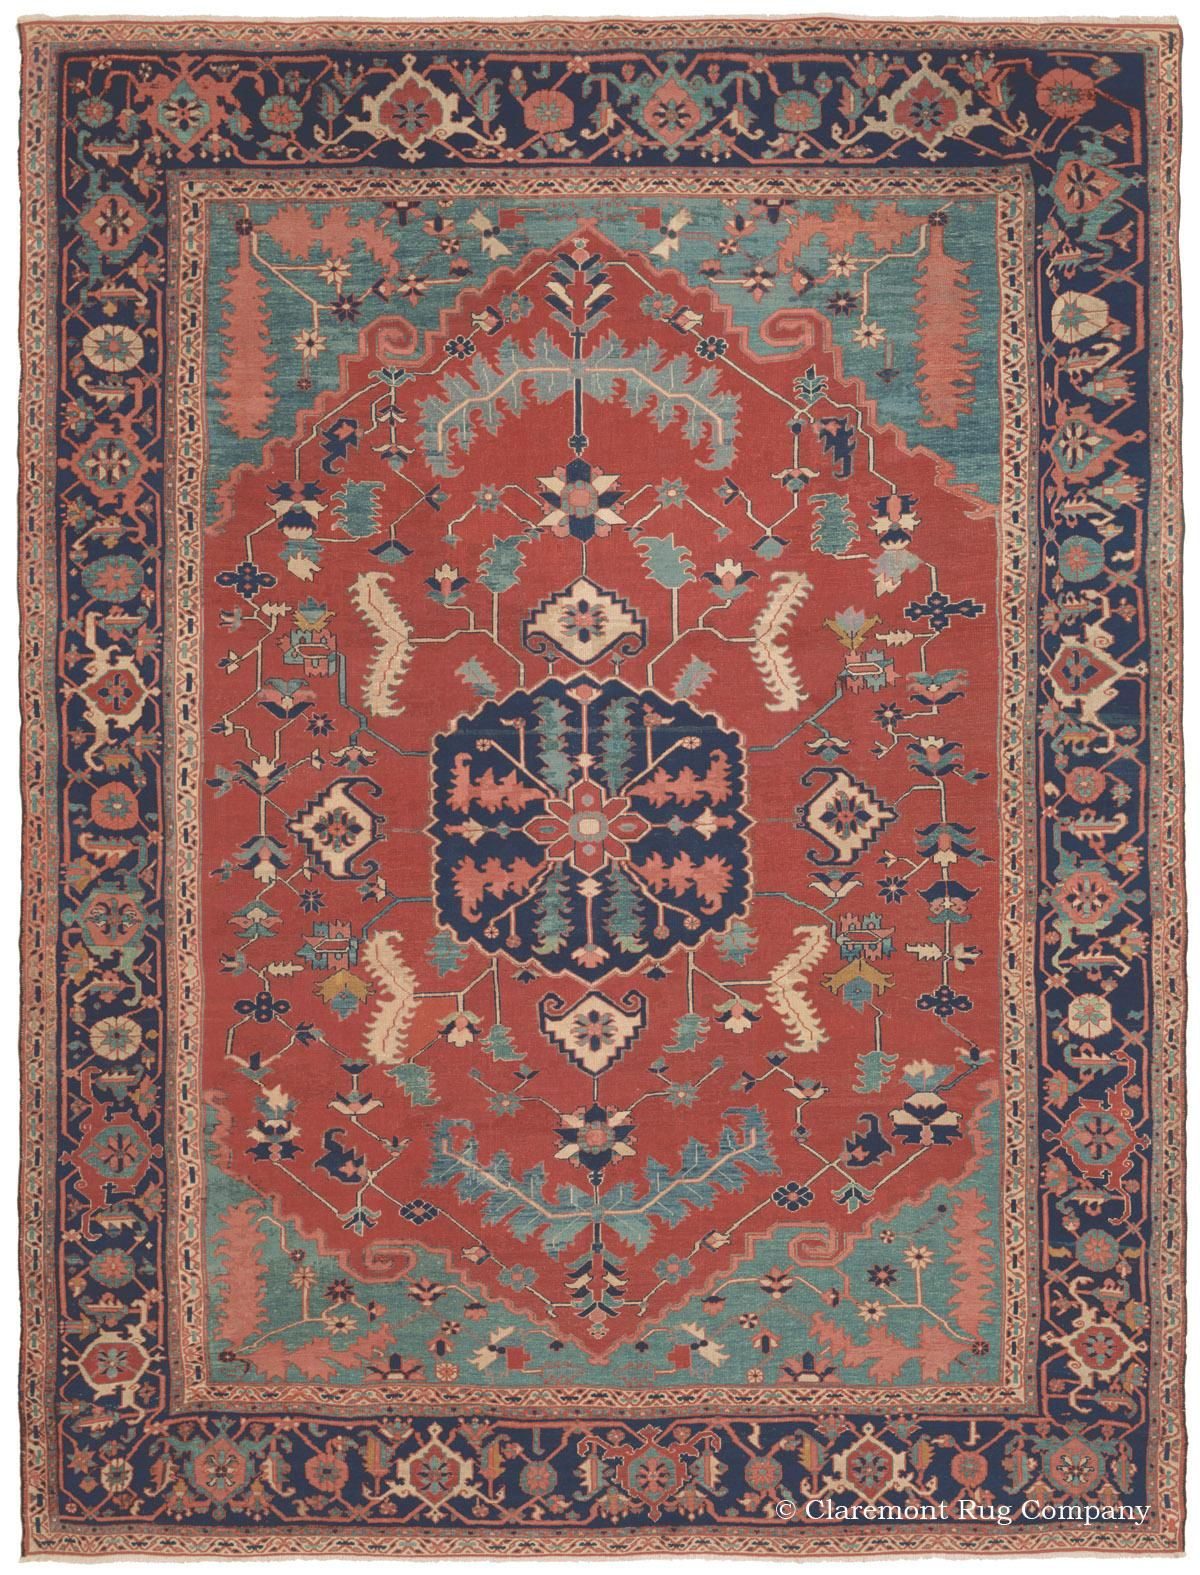 Serapi Northwest Persian Casual 9ft 8in X 12ft 5in 3rd Quarter 19th Century Rugs On Carpet Claremont Rug Company Rugs